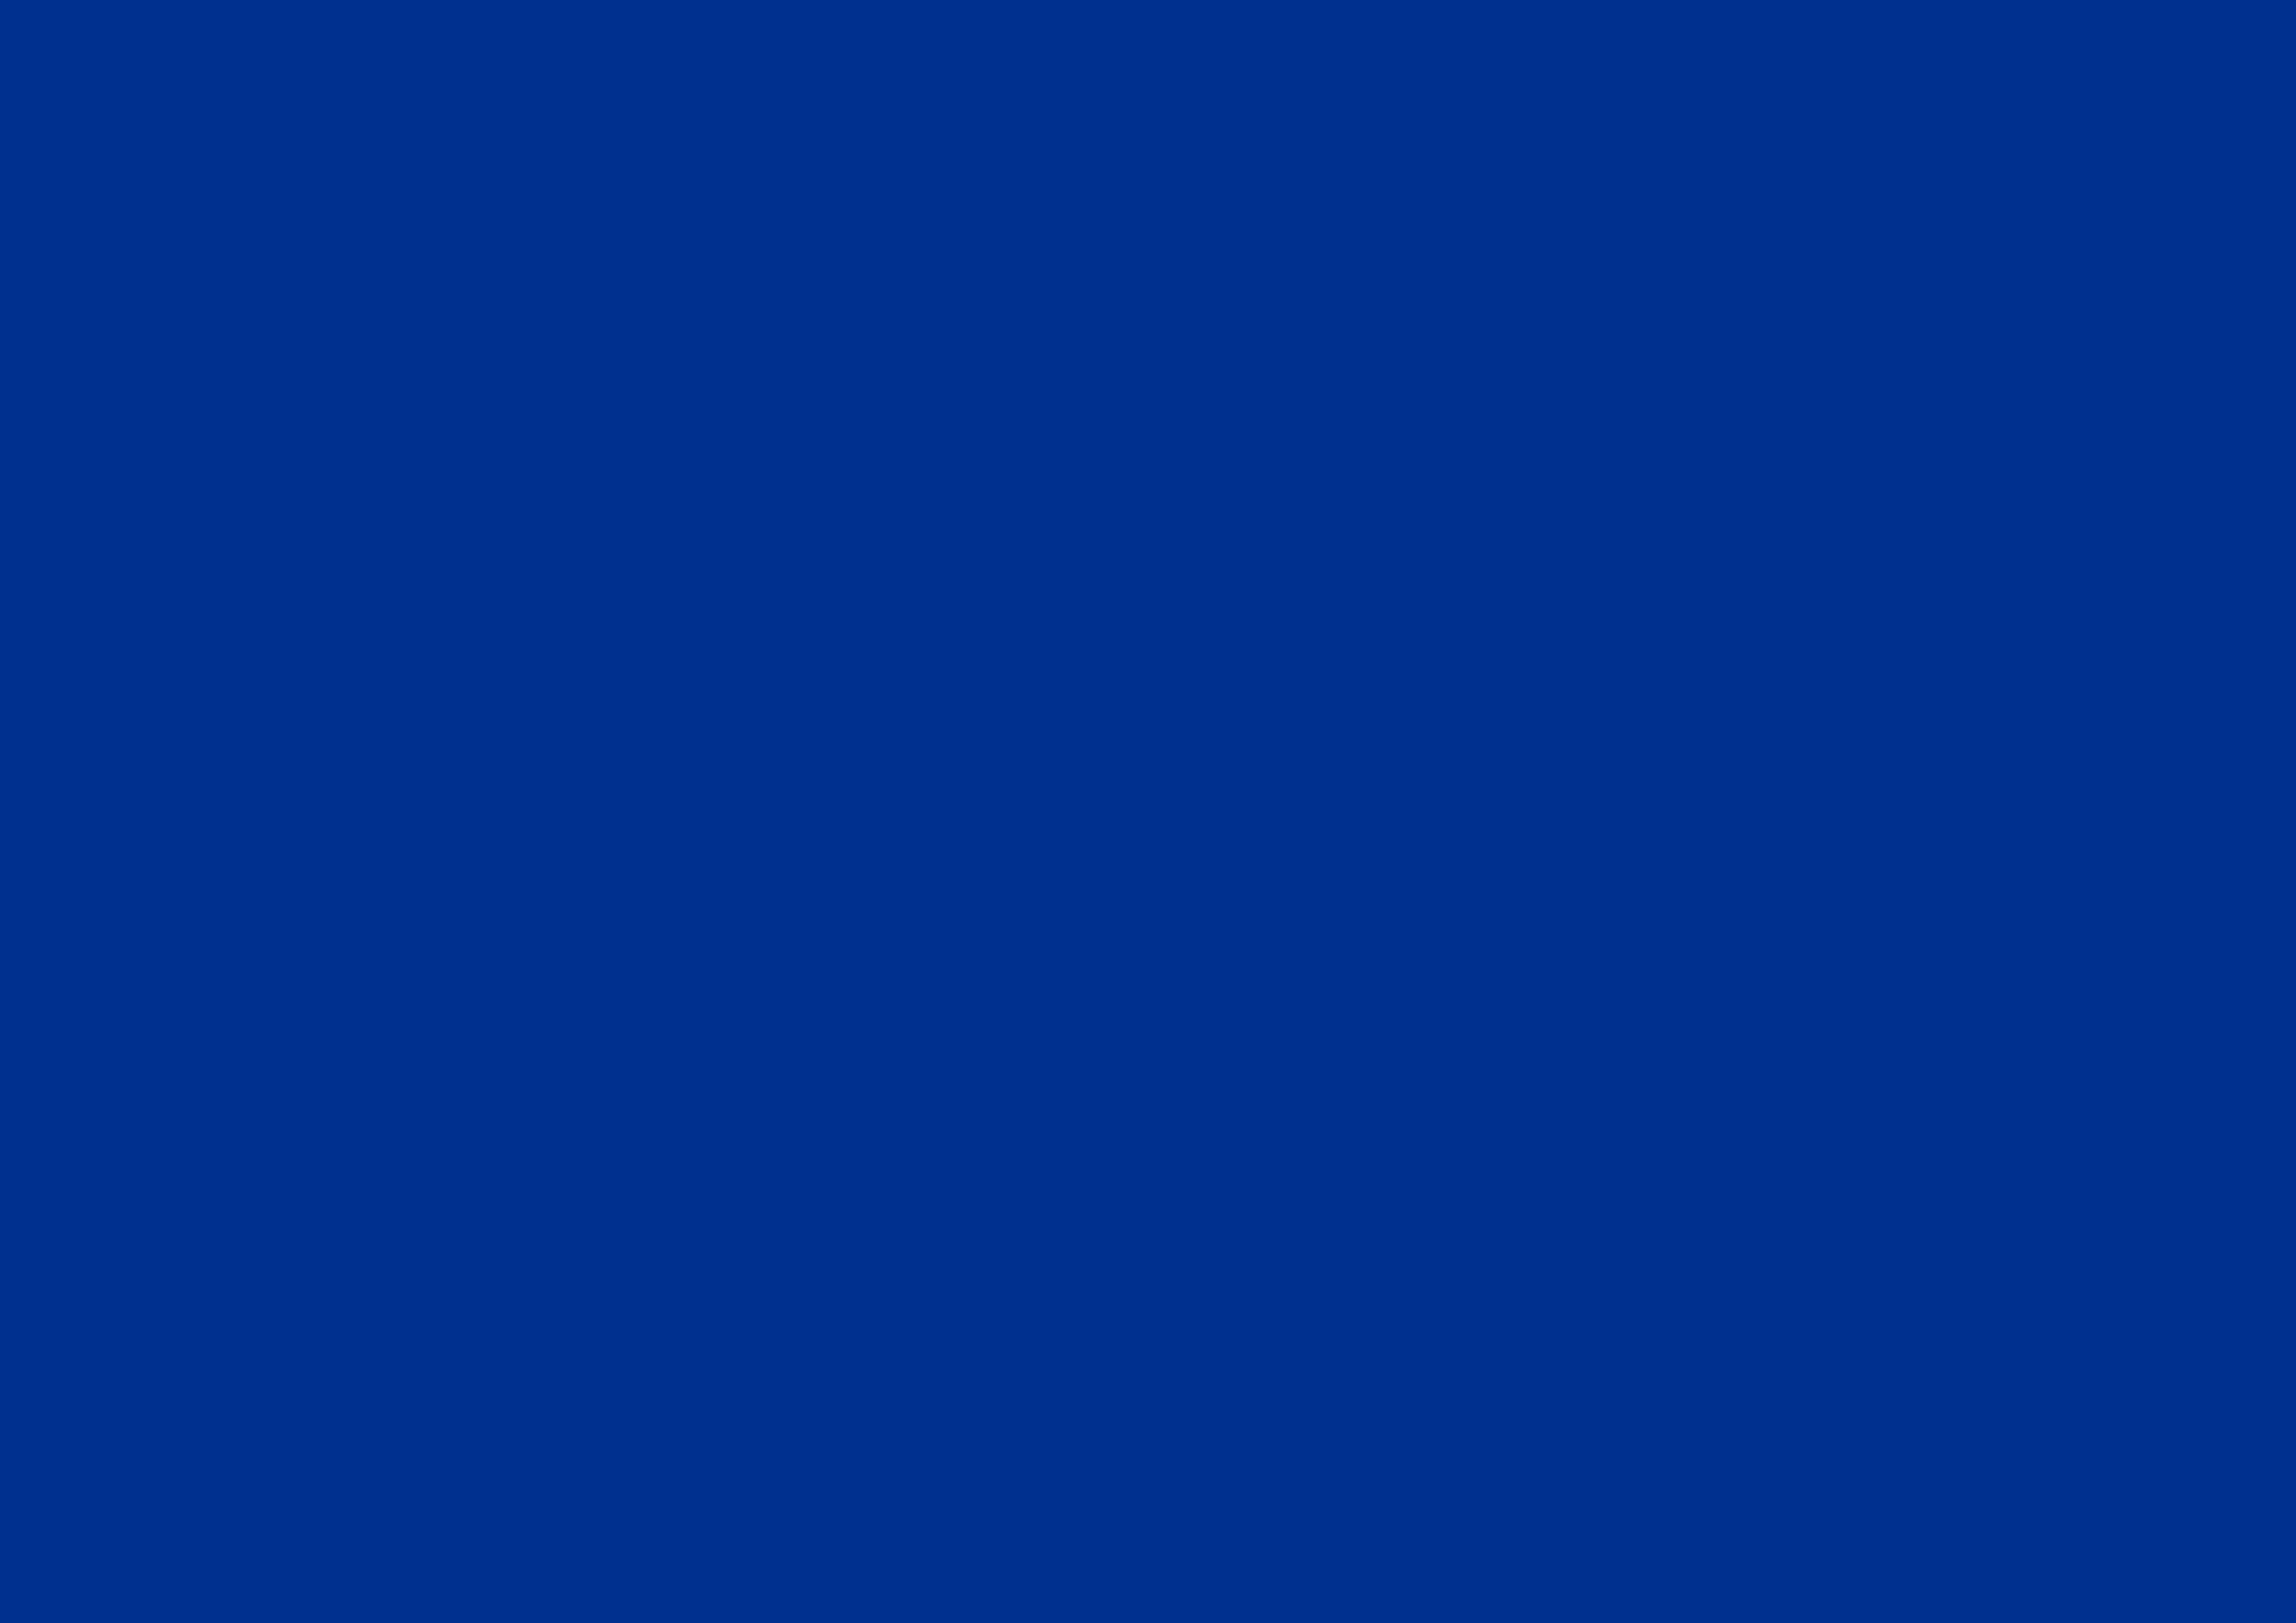 3508x2480 Air Force Dark Blue Solid Color Background